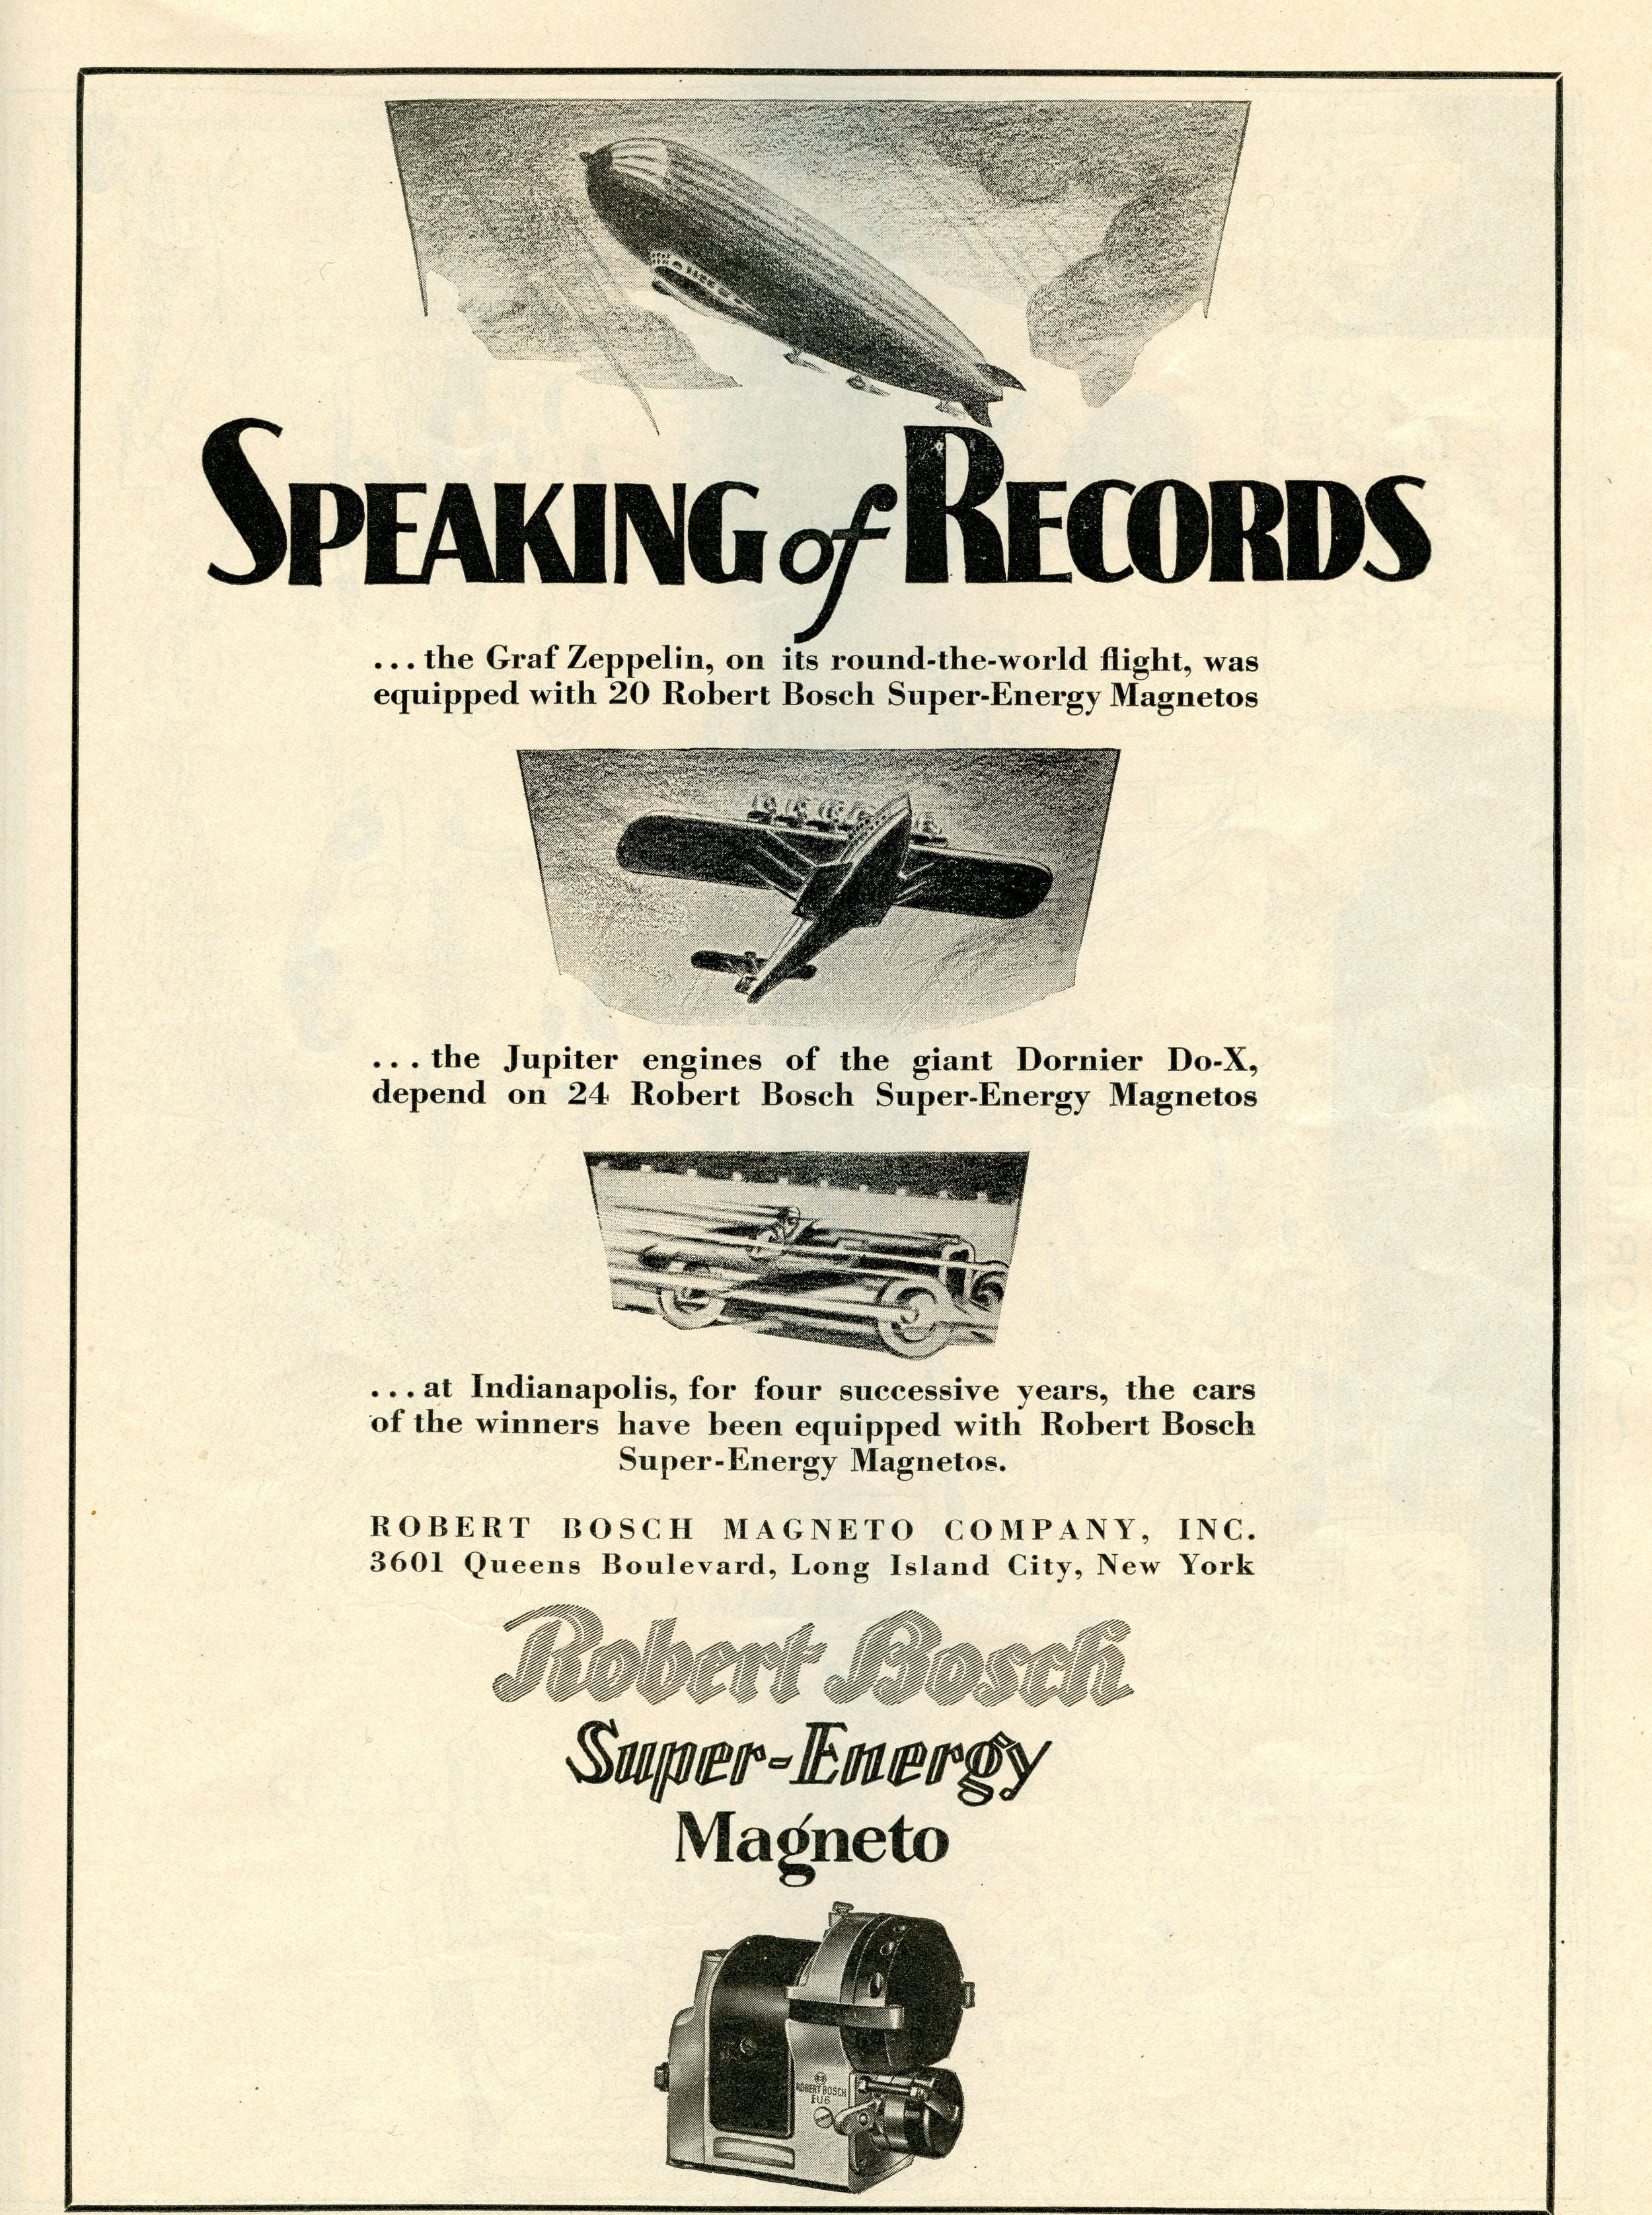 Robert Bosch Magneto Company Inc. Advertisement, Indianapolis 500 Program, 1930, page 53. WOS#2719